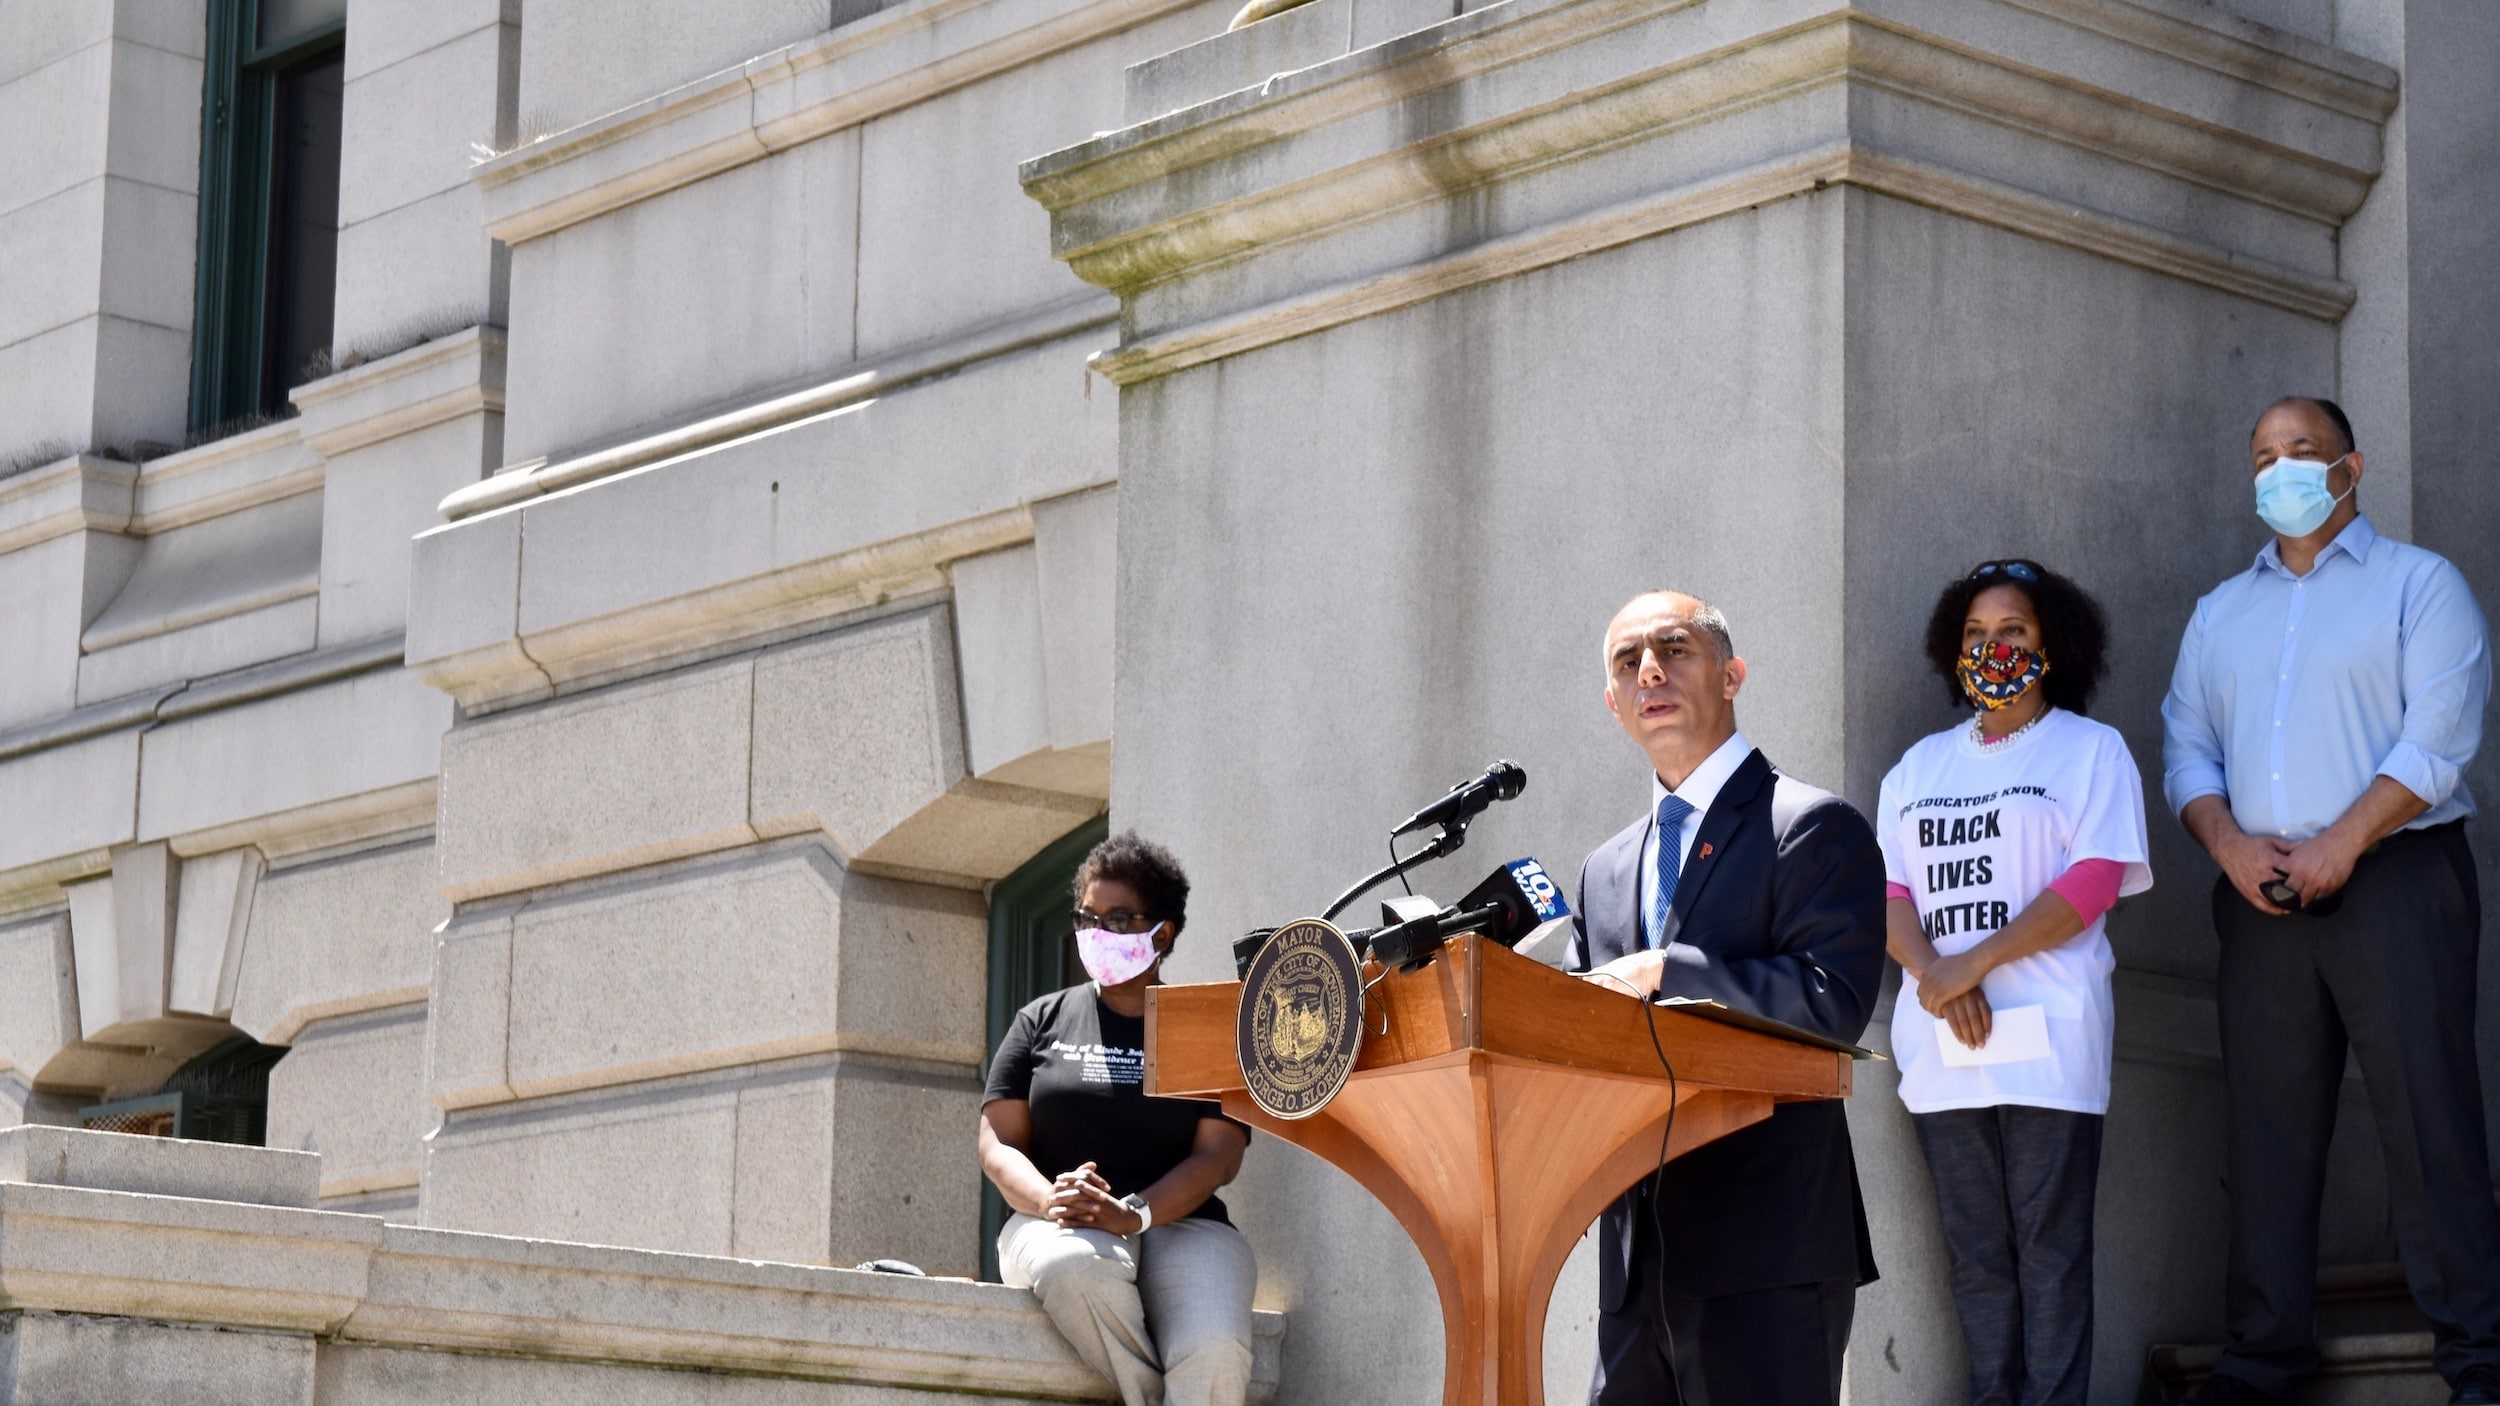 """Photo for Mayor Elorza announces removal of """"Plantations"""" from city documents and oath ceremonies"""